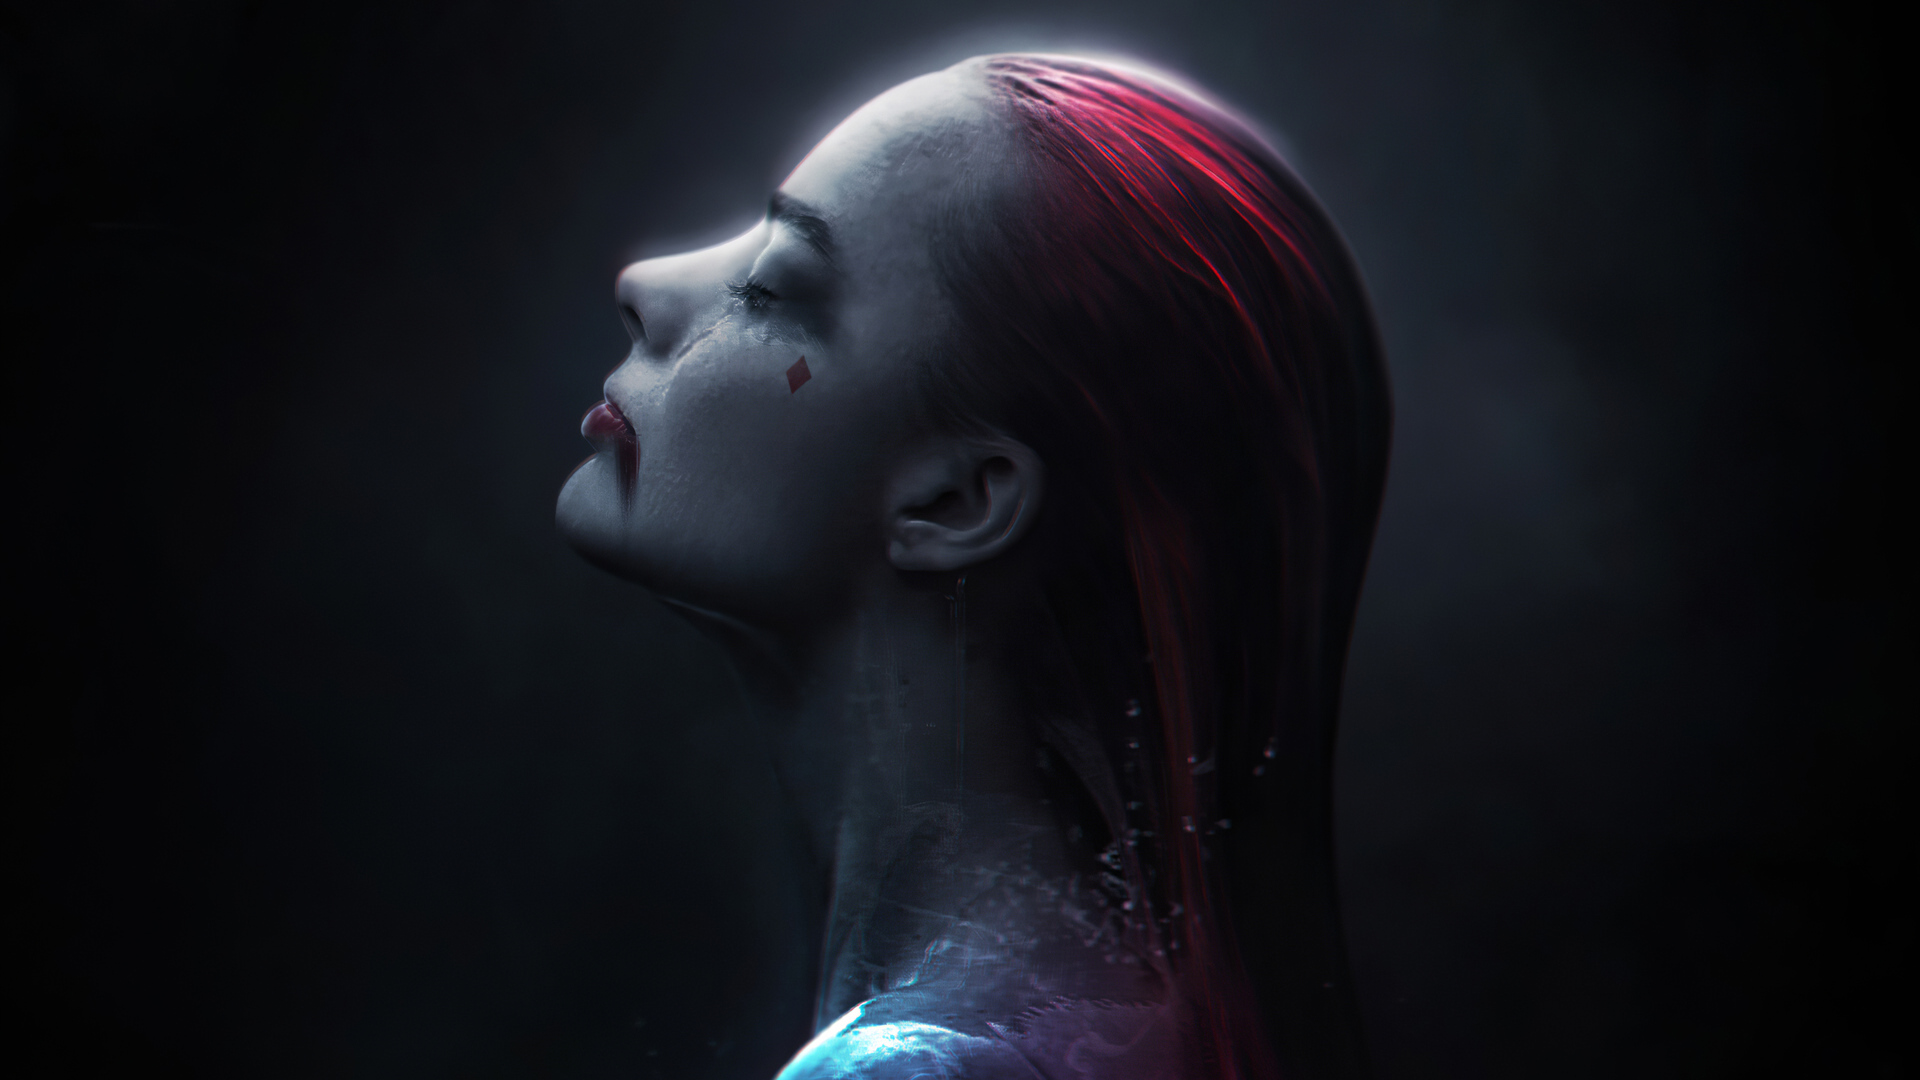 1920x1080 Harley Quinn Blood Bath 4k Laptop Full Hd 1080p Hd 4k Wallpapers Images Backgrounds Photos And Pictures